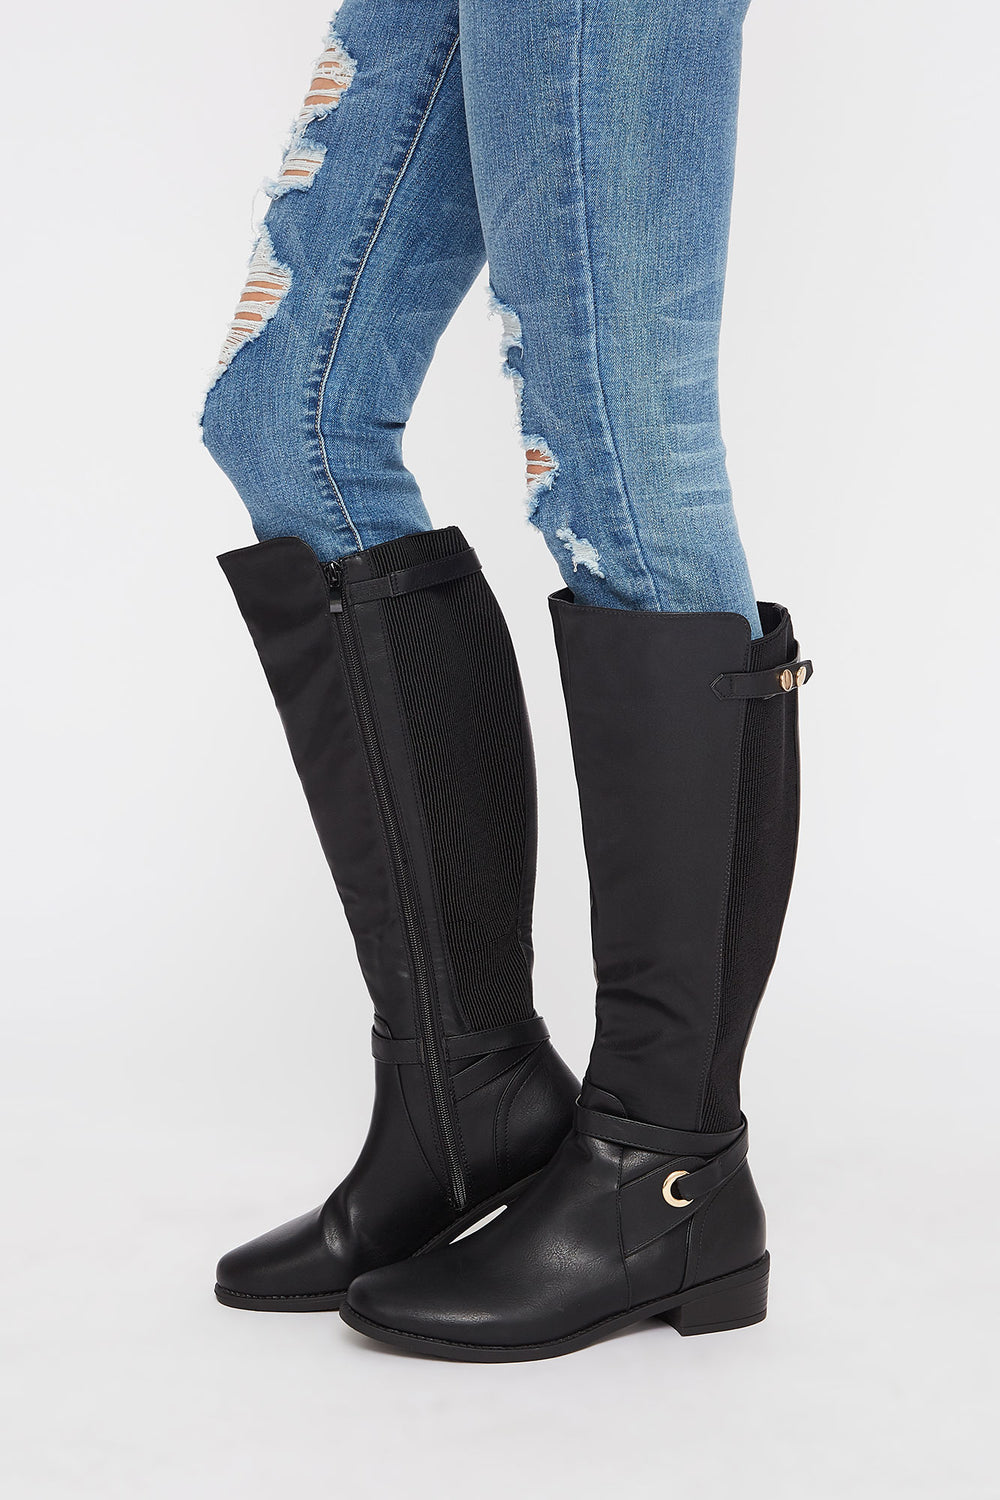 Gore Faux-Leather Knee High Boot Jet Black